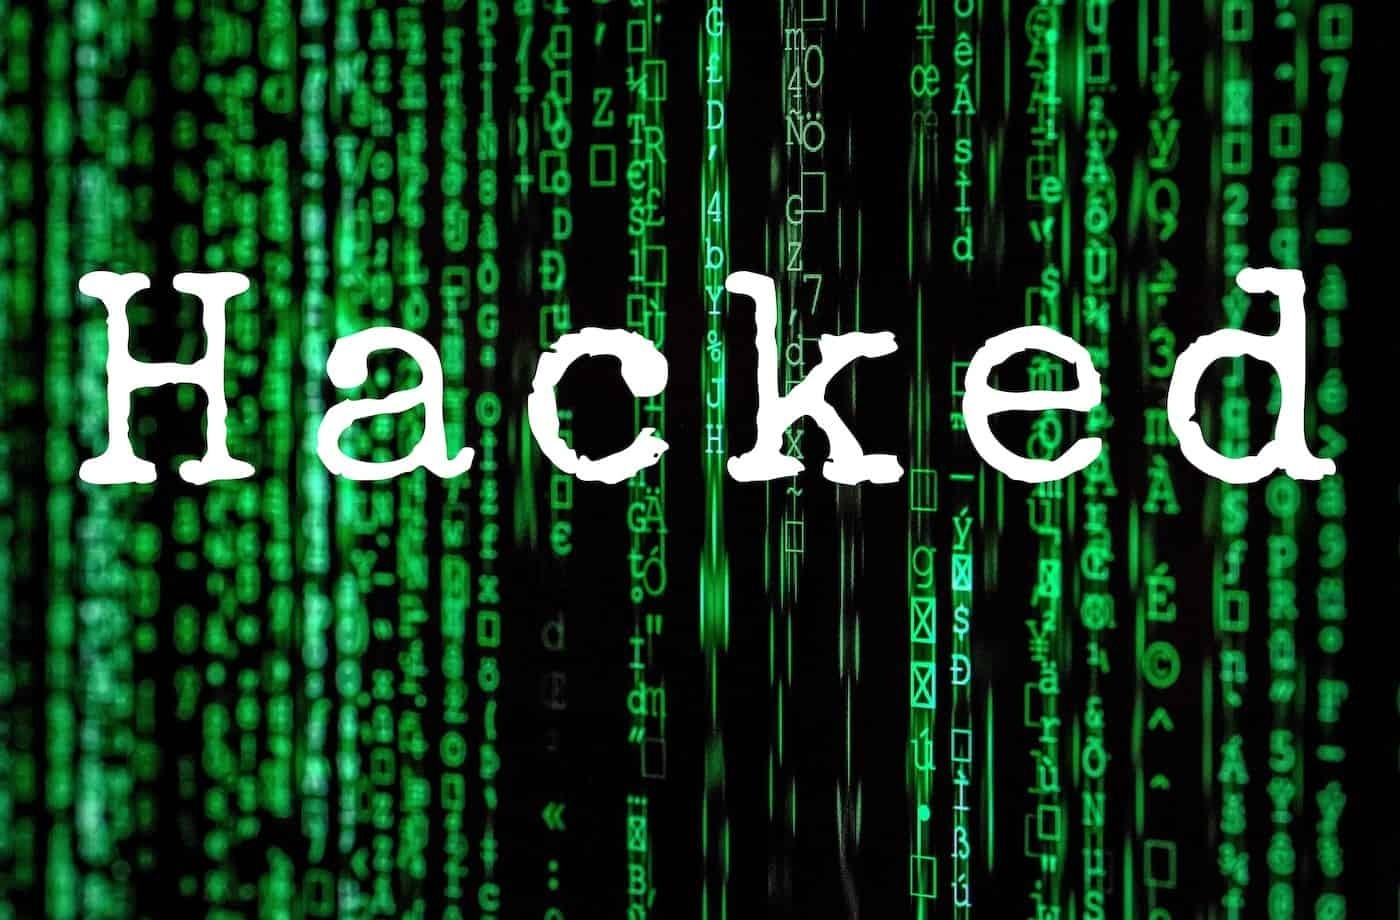 hackers cybersecurity